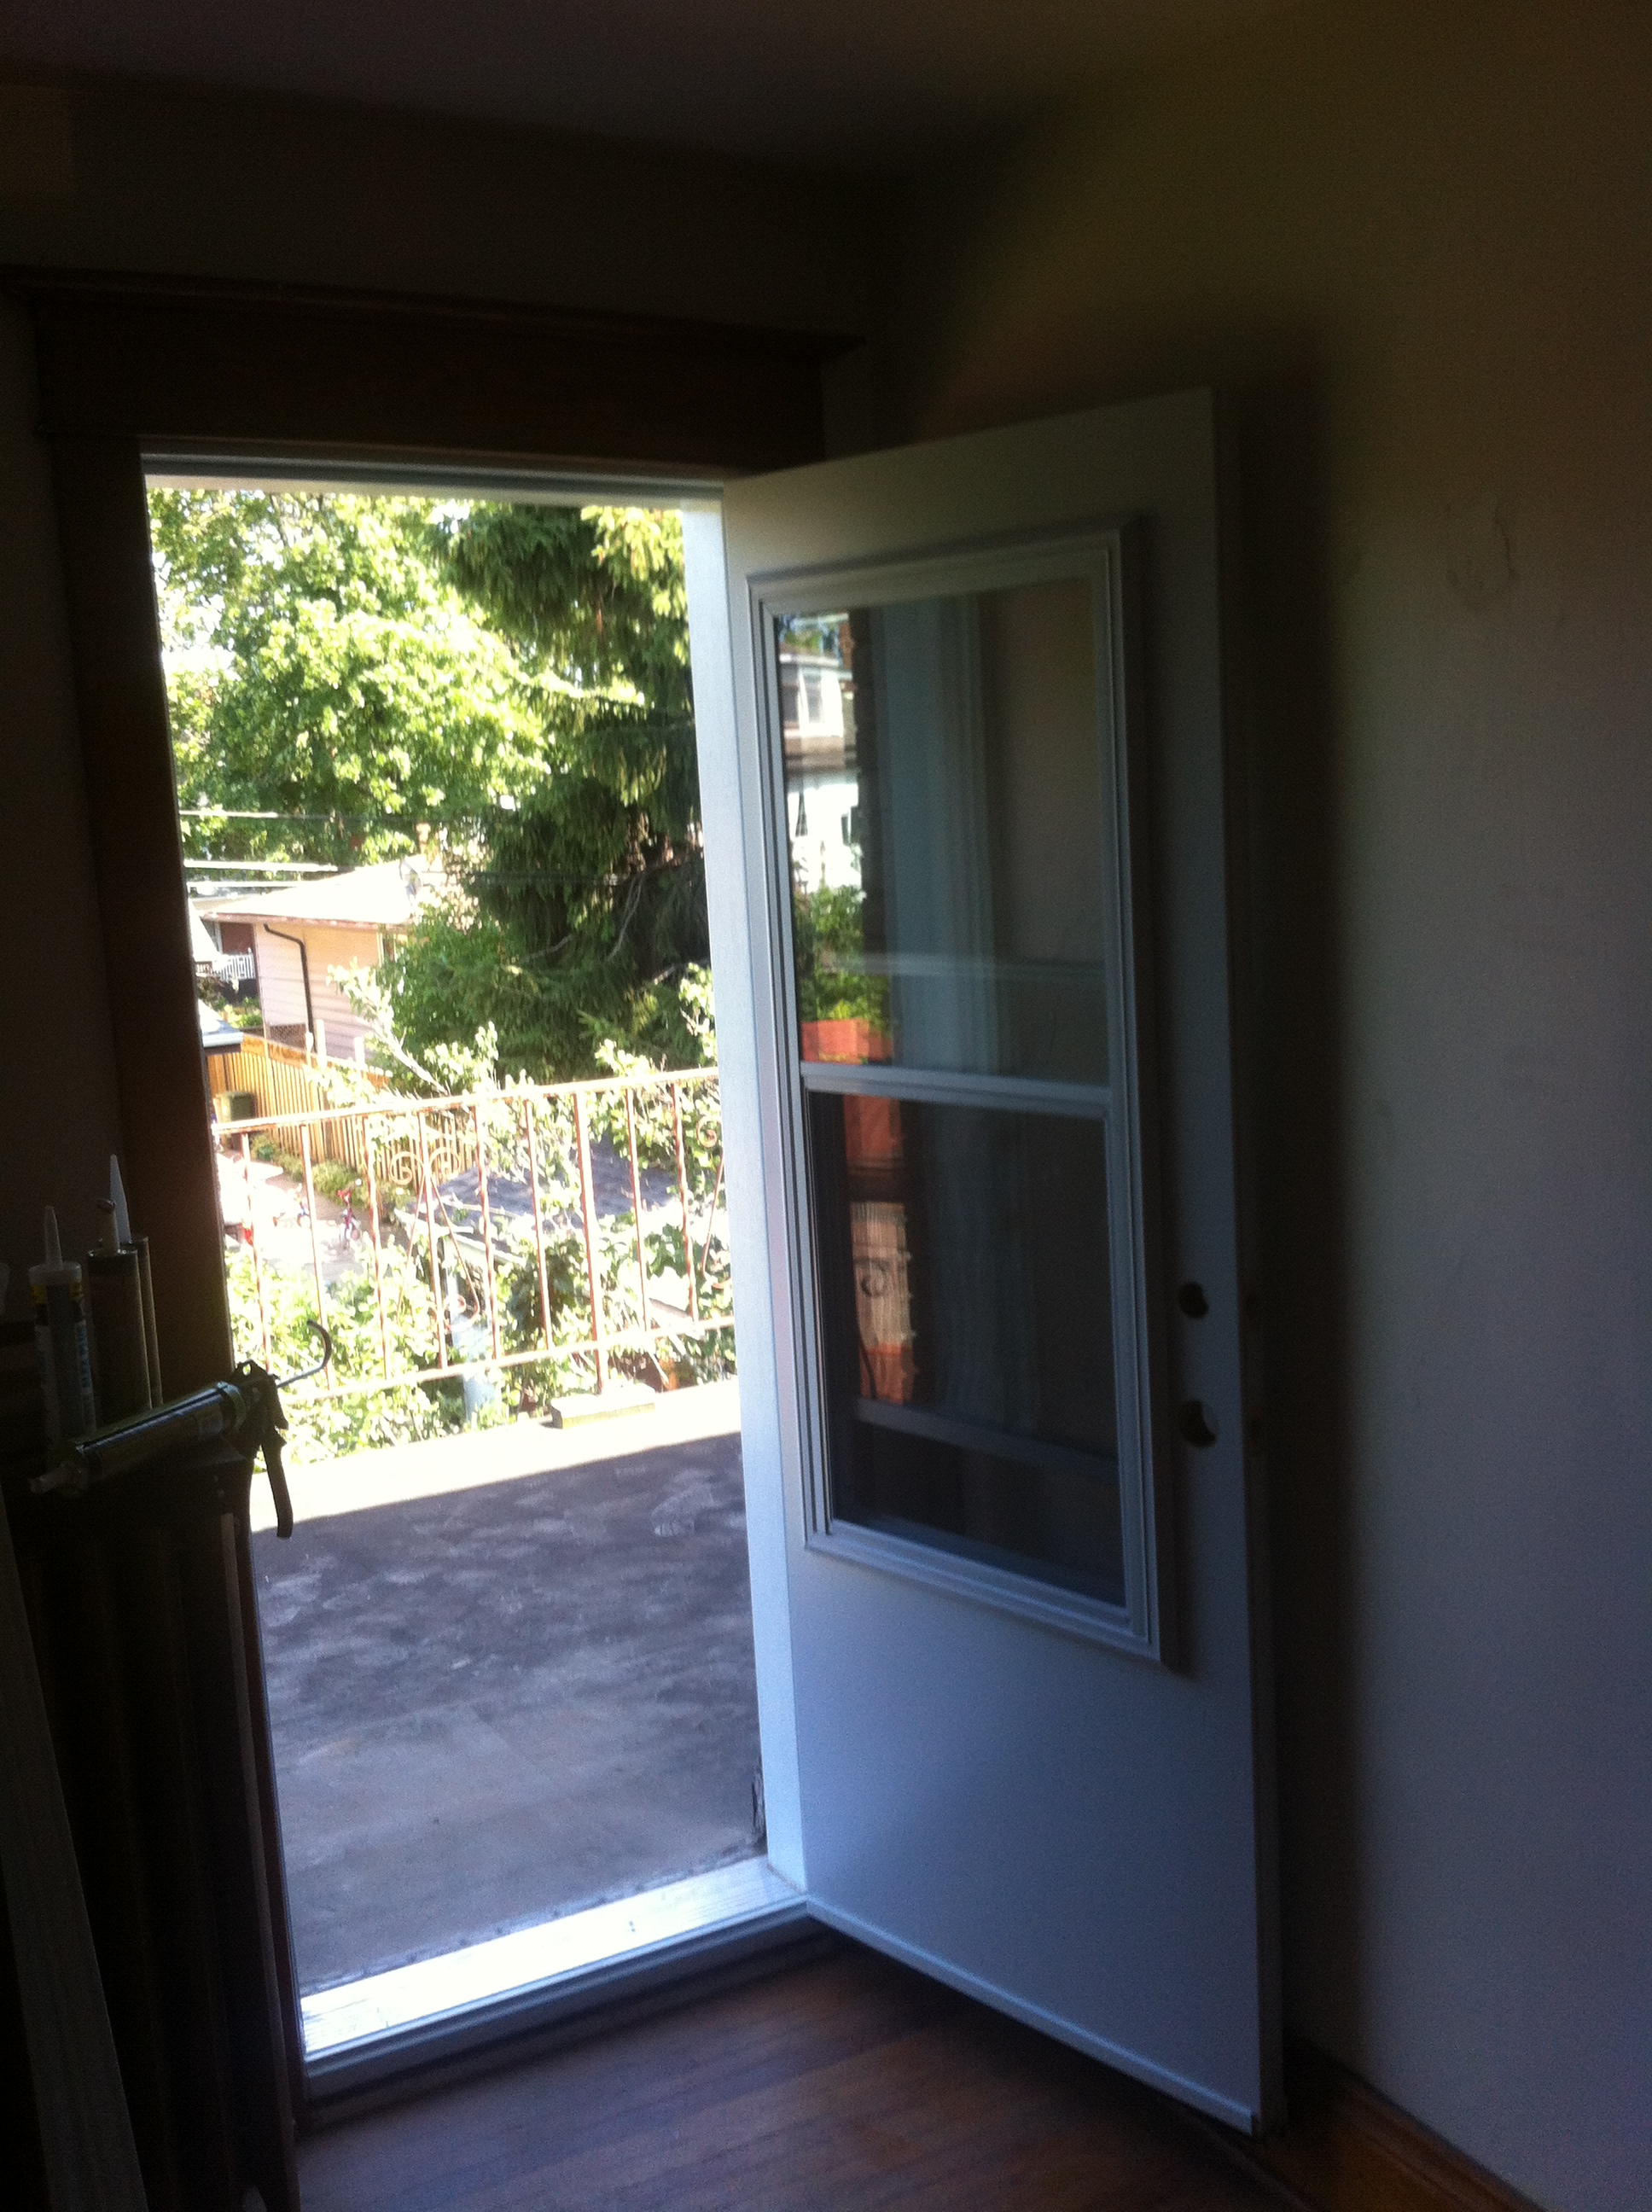 Exterior doors with windows that open of exterior door for Entry door with window that opens